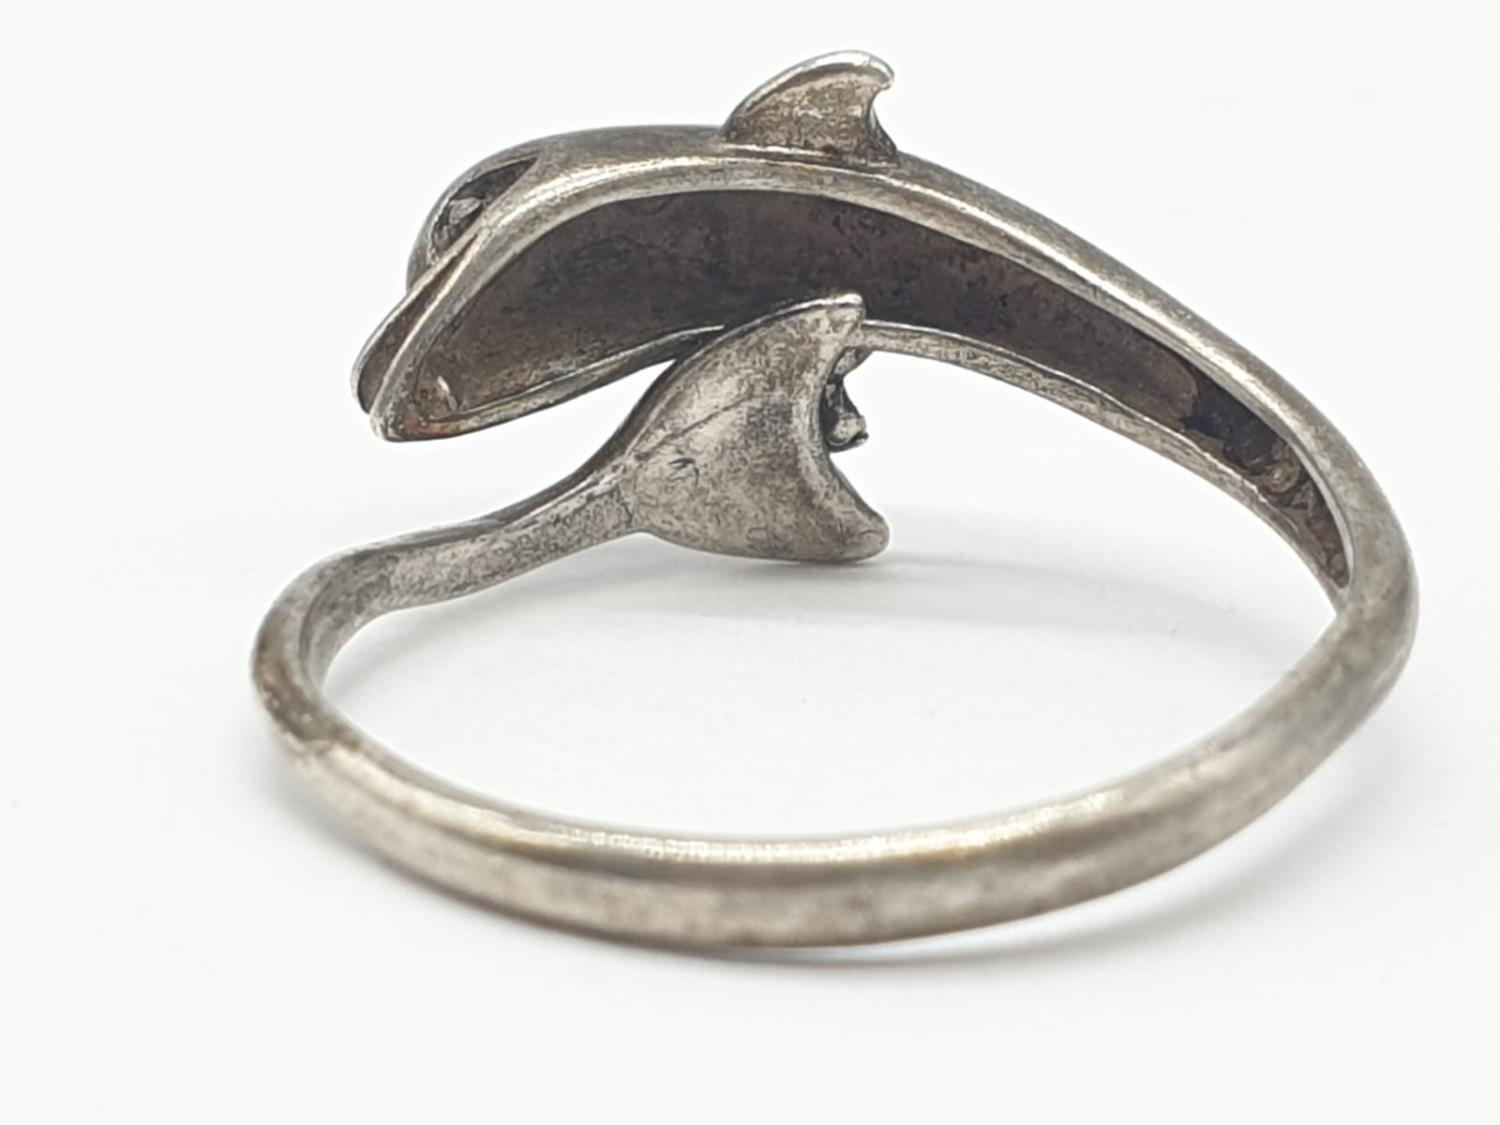 2 x Silver RINGS, Dolphin Size O. Star Size J. 5.1g - Image 6 of 12